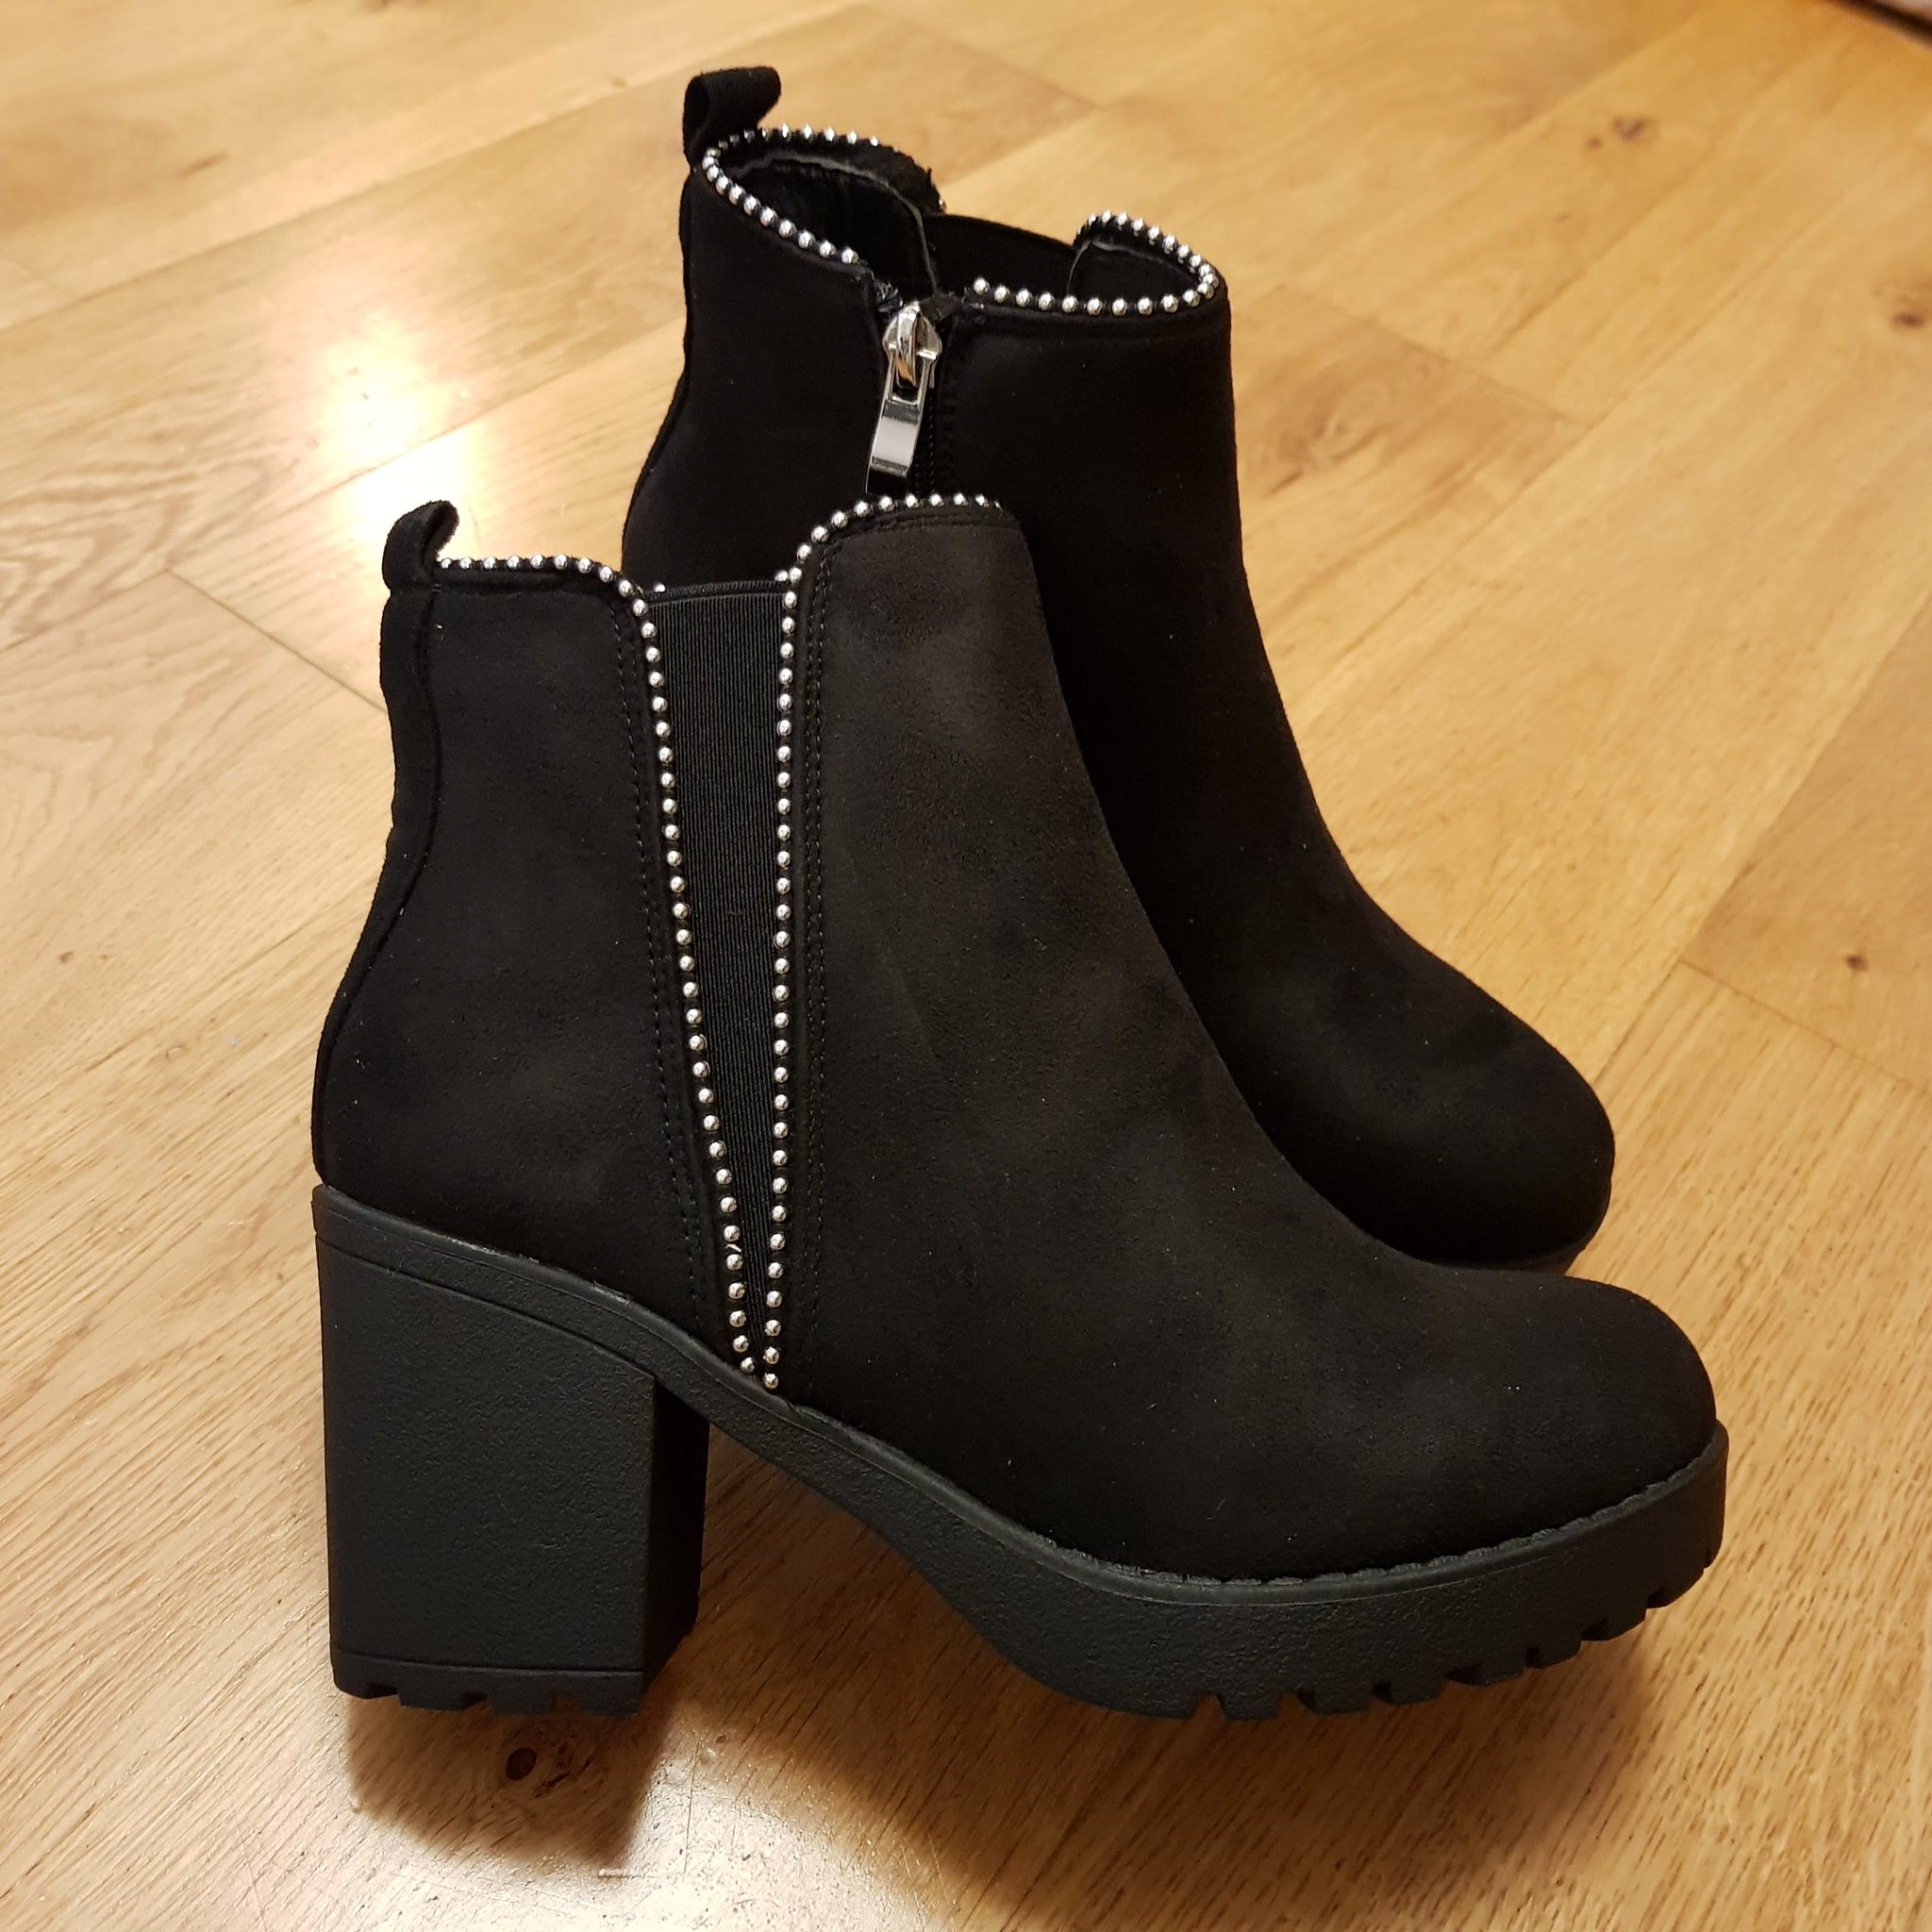 Chloe Black Suede Ankle Boots (SIZE 3,4)